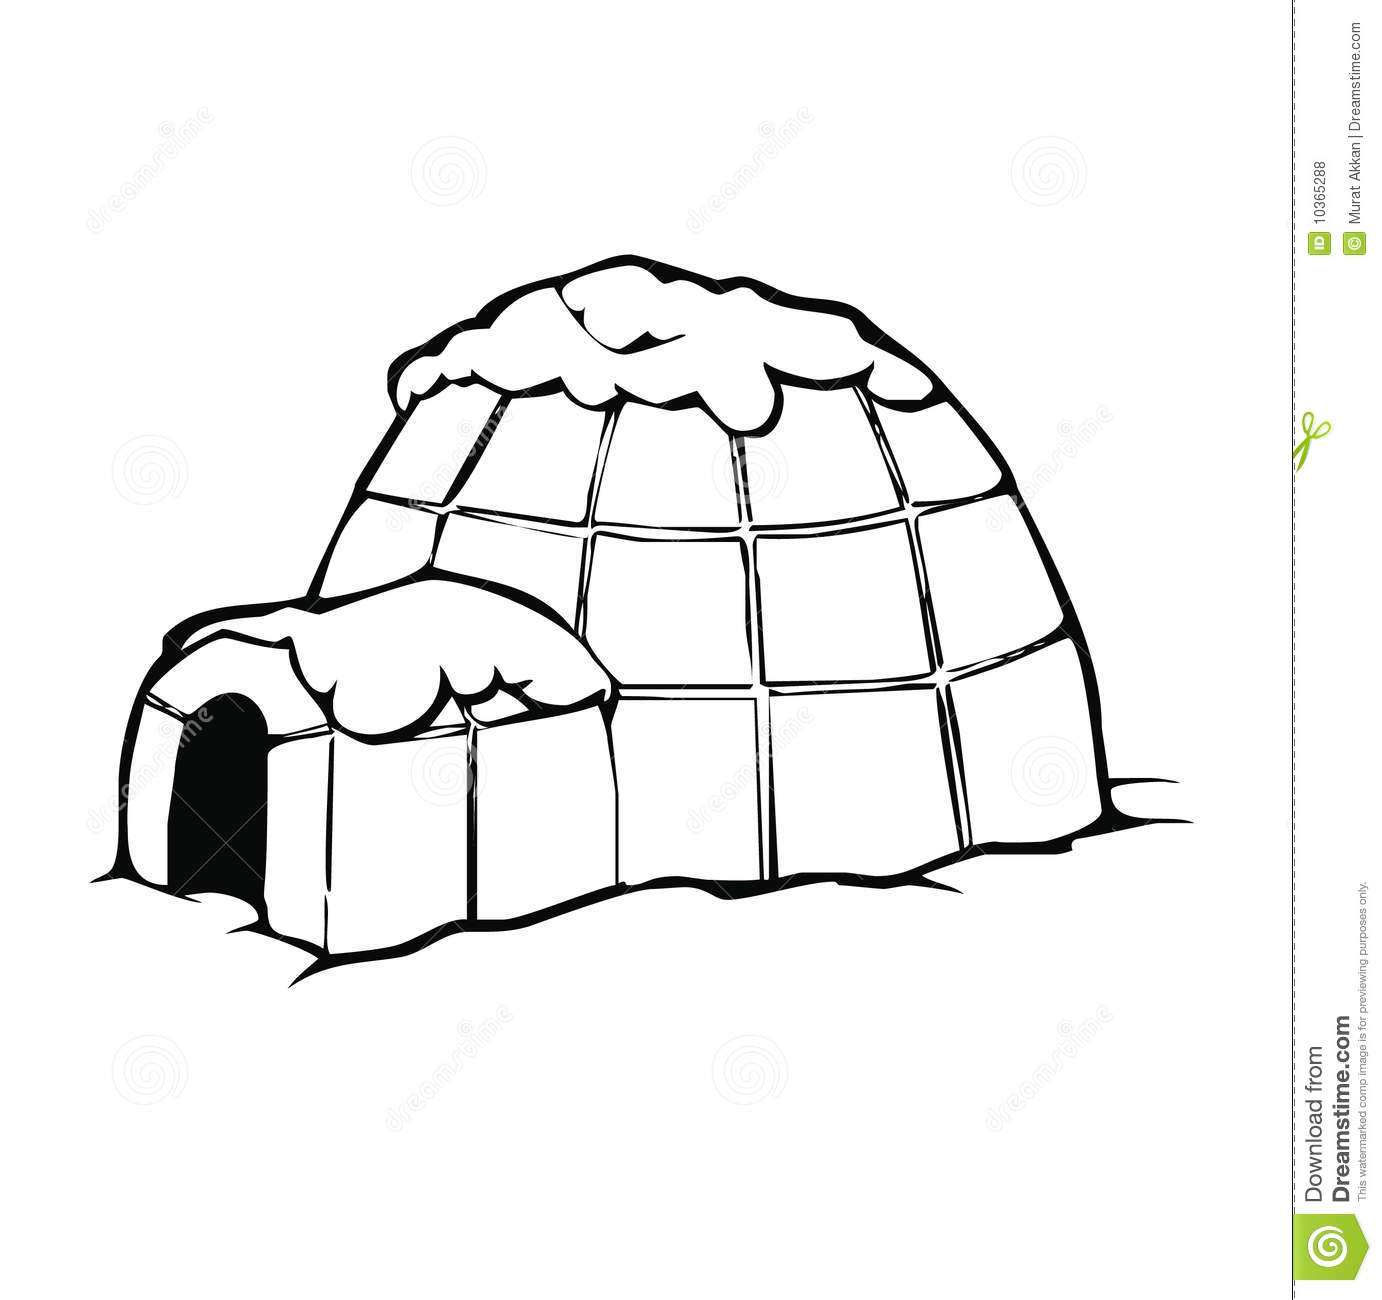 igloo cool chill